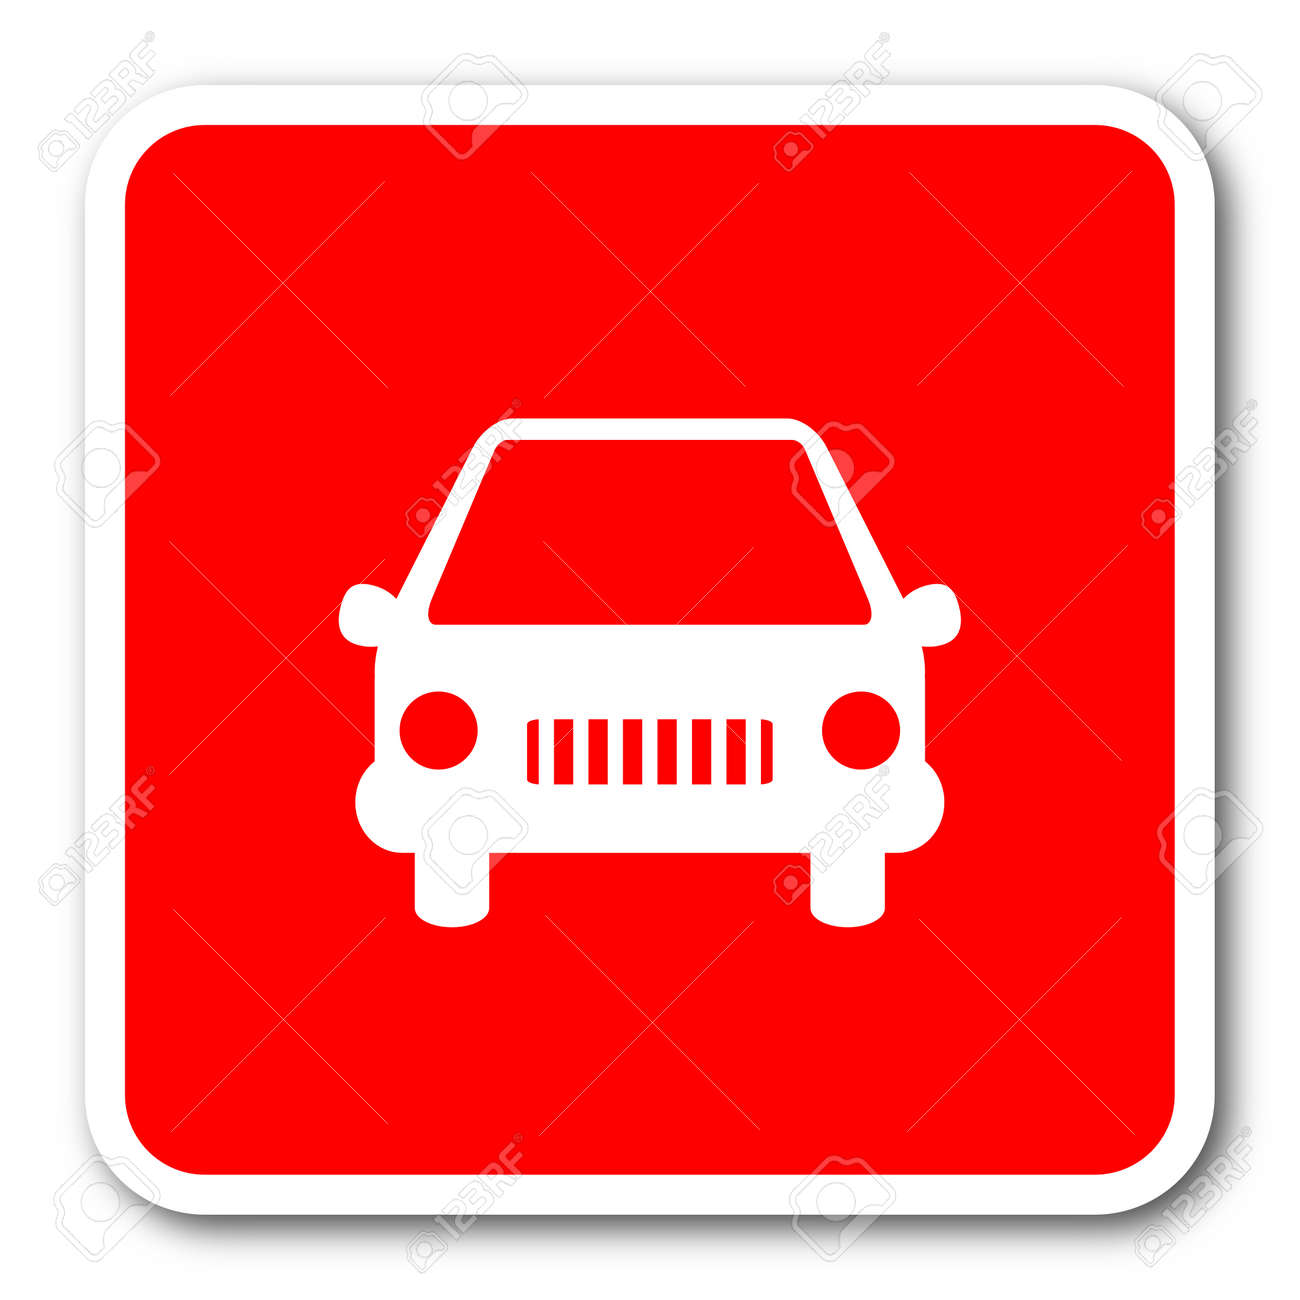 Car Red Square Simple Tag Banner Web Icon Stock Photo Picture And